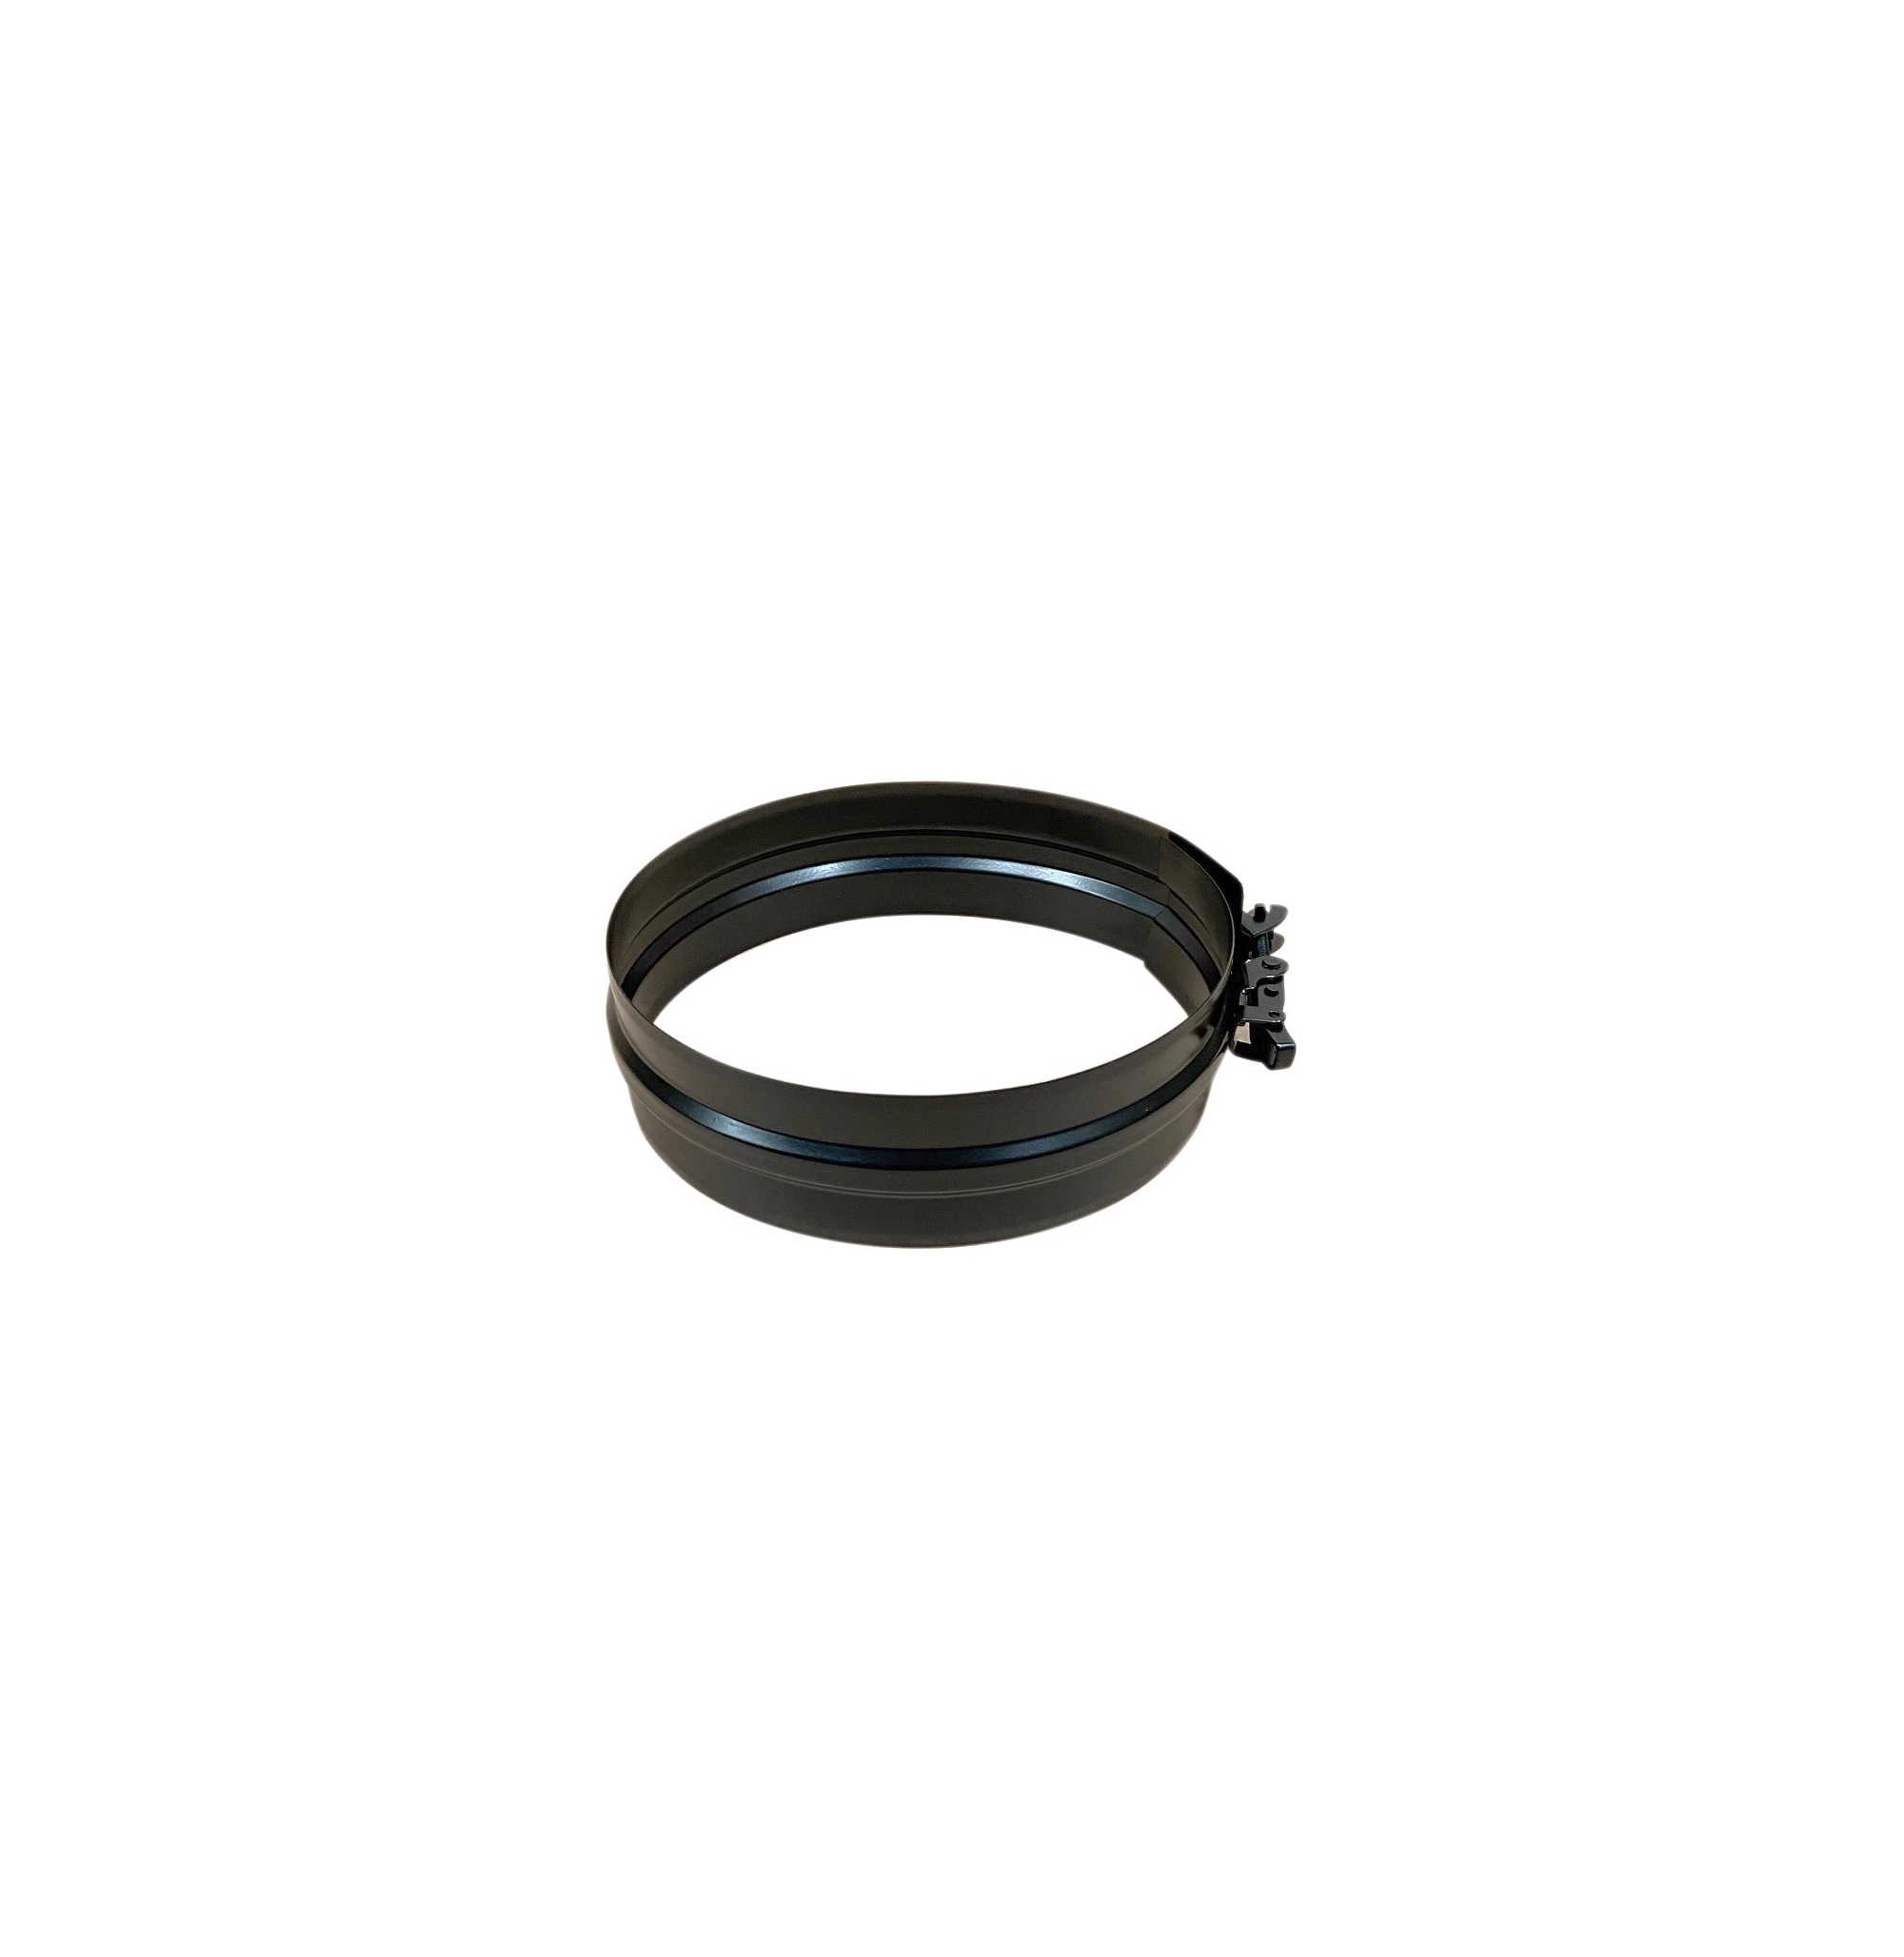 Structural Locking Band - Schiedel ICID Twin Wall - Black